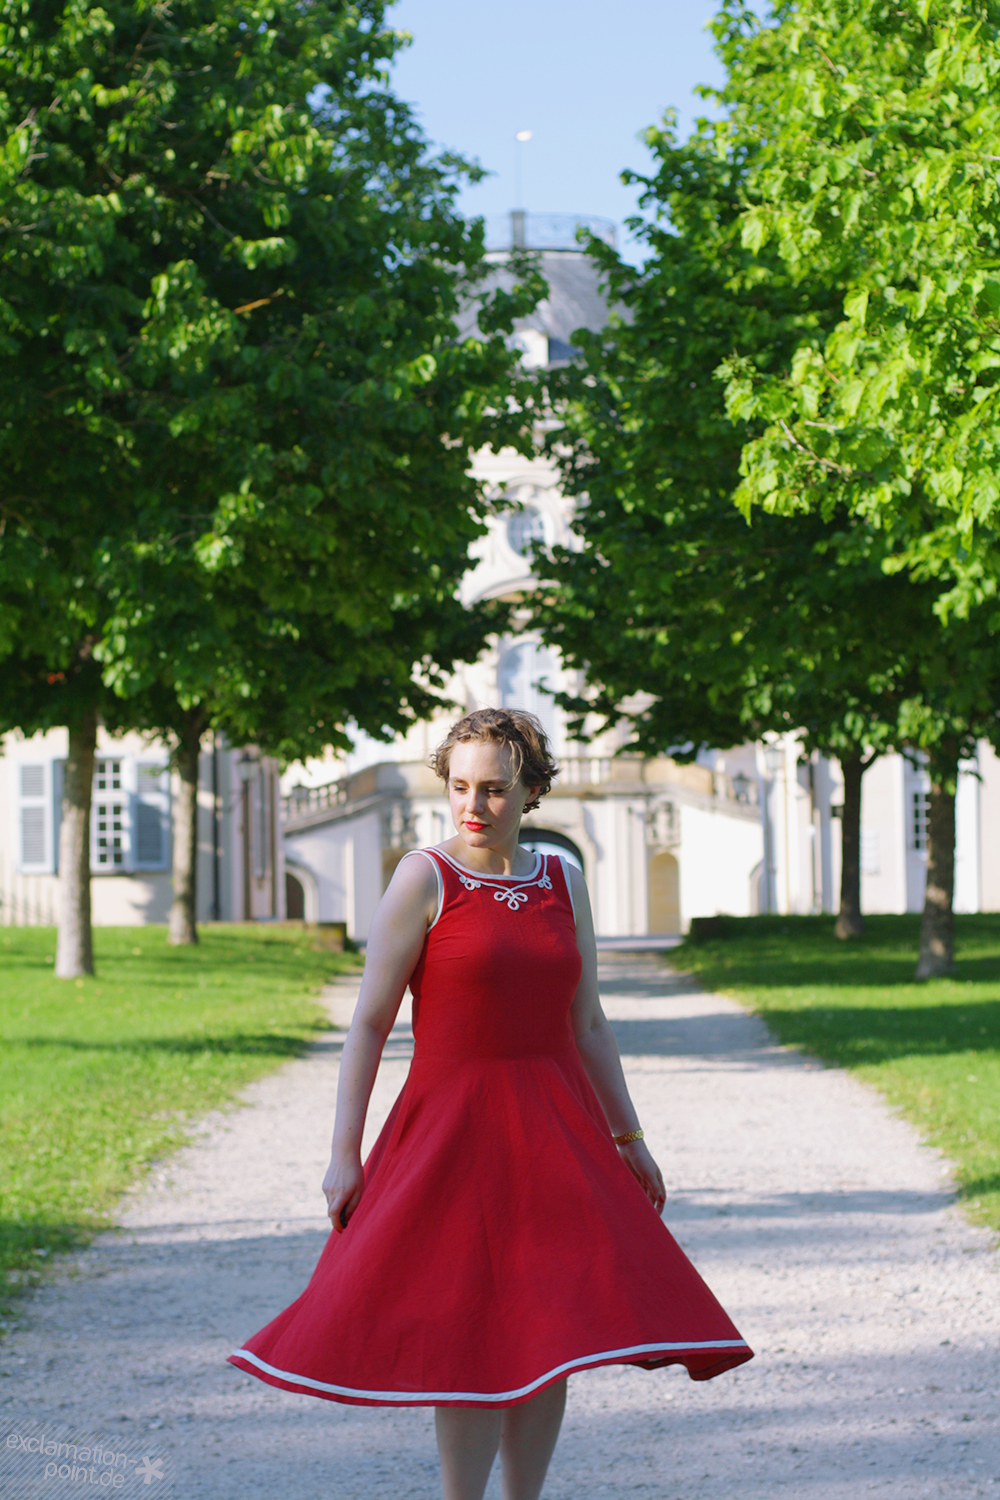 La Maison Victor Eden dress, sailor-style, with soutache | exclamation-point.de - sewing blog